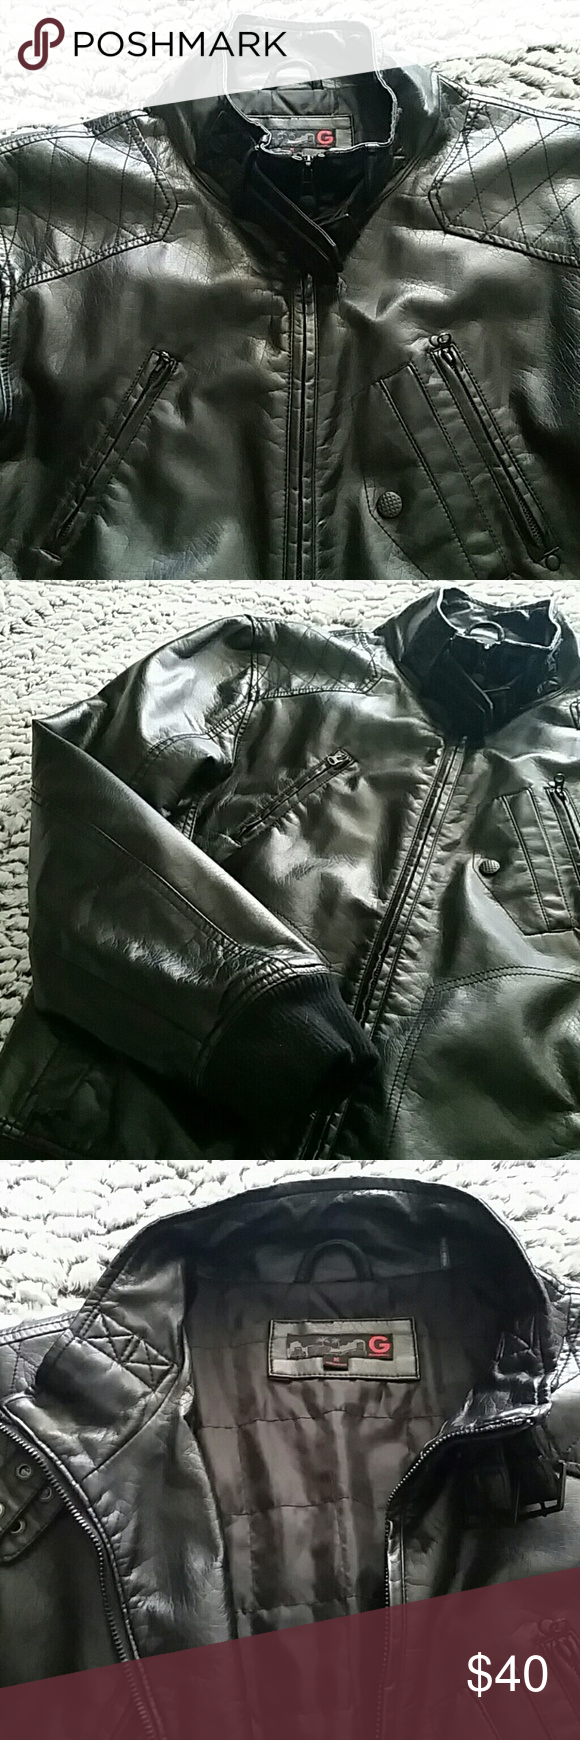 Selling this Black Faux Leather Jacket by G by Guess on Poshmark! My username is: edismoz. #shopmycloset #poshmark #fashion #shopping #style #forsale #G by Guess #Other